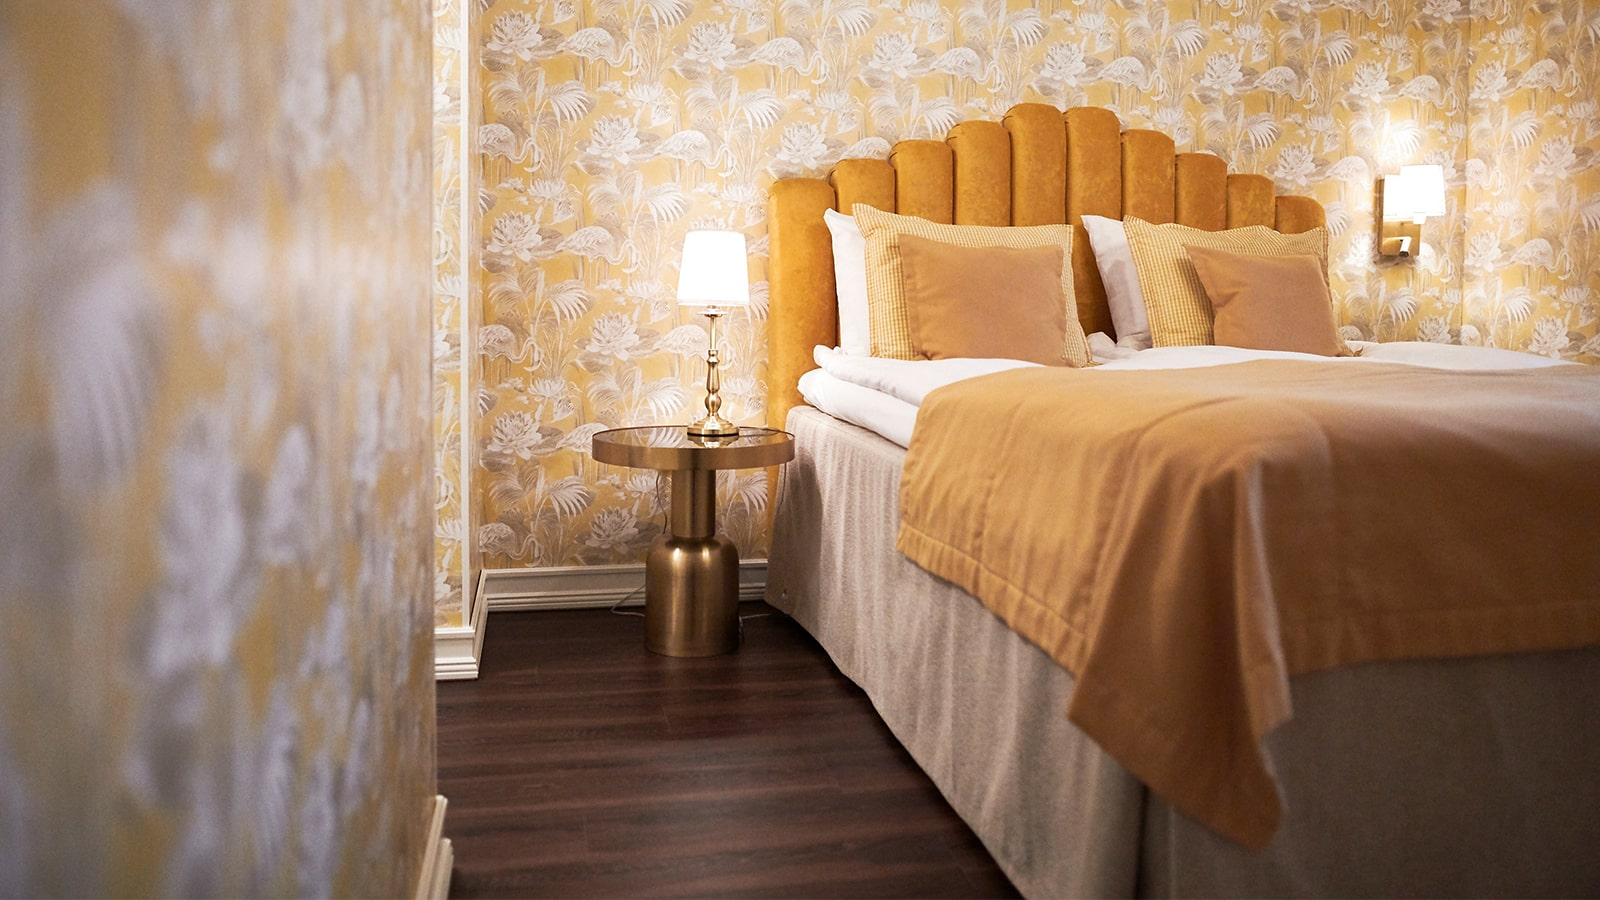 Bed decorated with yellow textiles in a hotel room